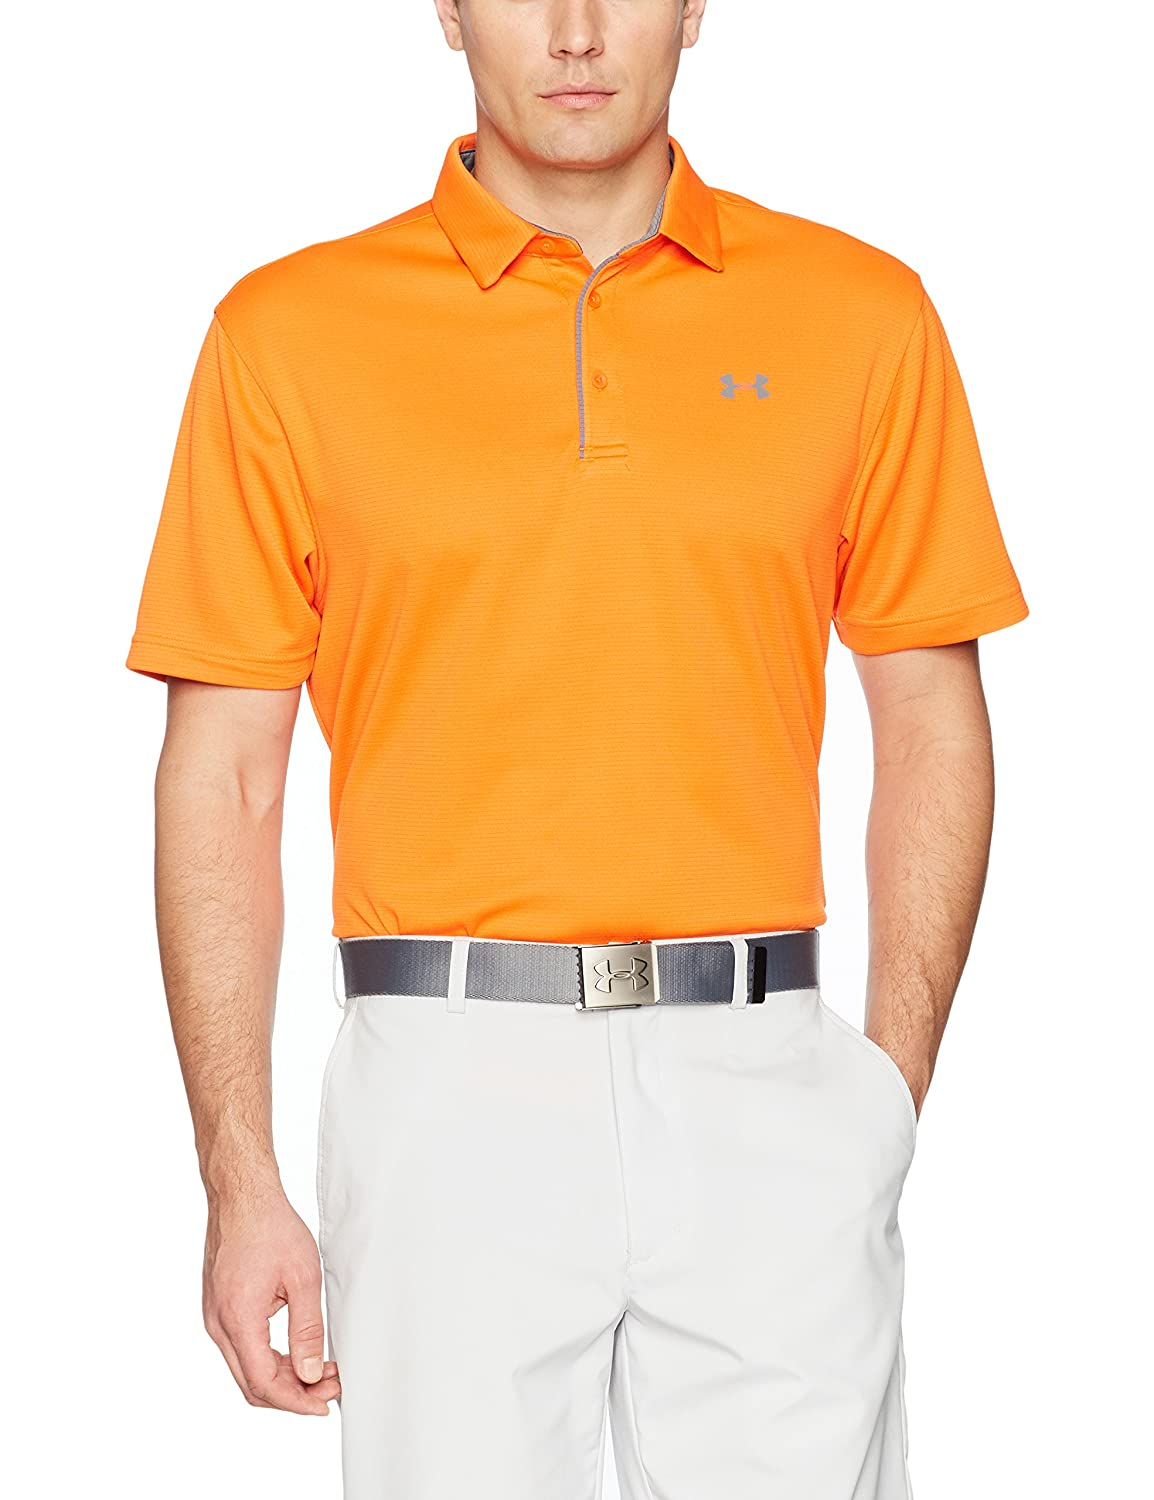 (アンダーアーマー) UNDER ARMOUR テックポロ(ゴルフ/ポロシャツ/MEN)[1290140] B0716ZJV1S 3X-Large Tall|Team Orange/Graphite Team Orange/Graphite 3X-Large Tall